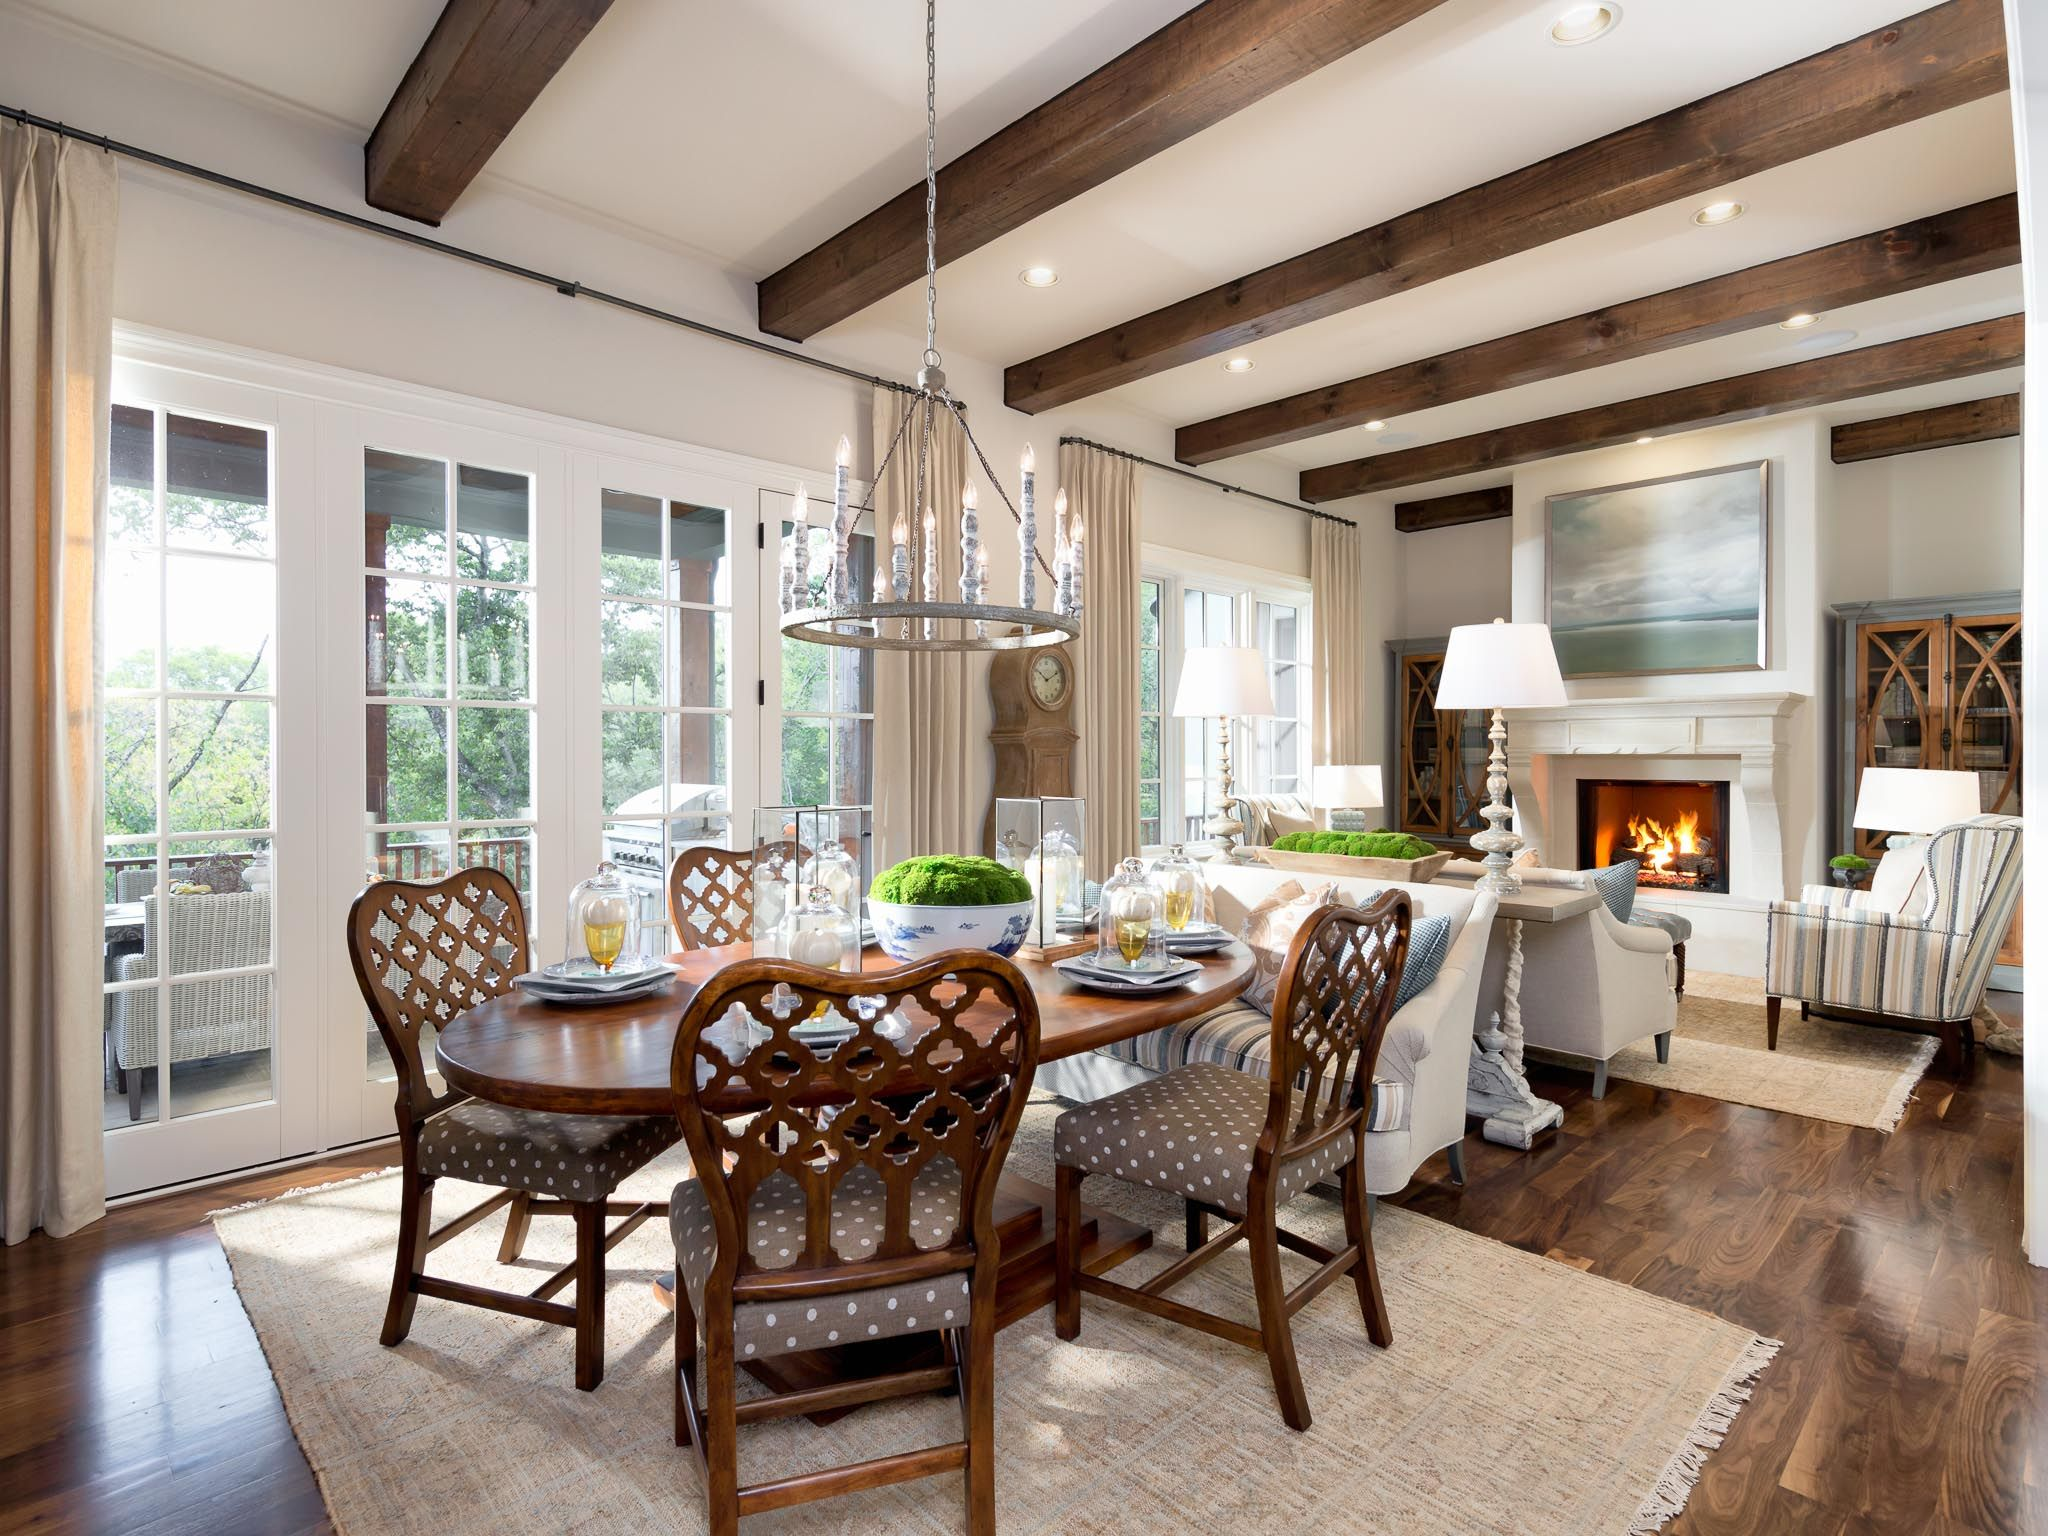 Breakfast Nook And Hearth Room With Rough Hewn Beams In Walnut